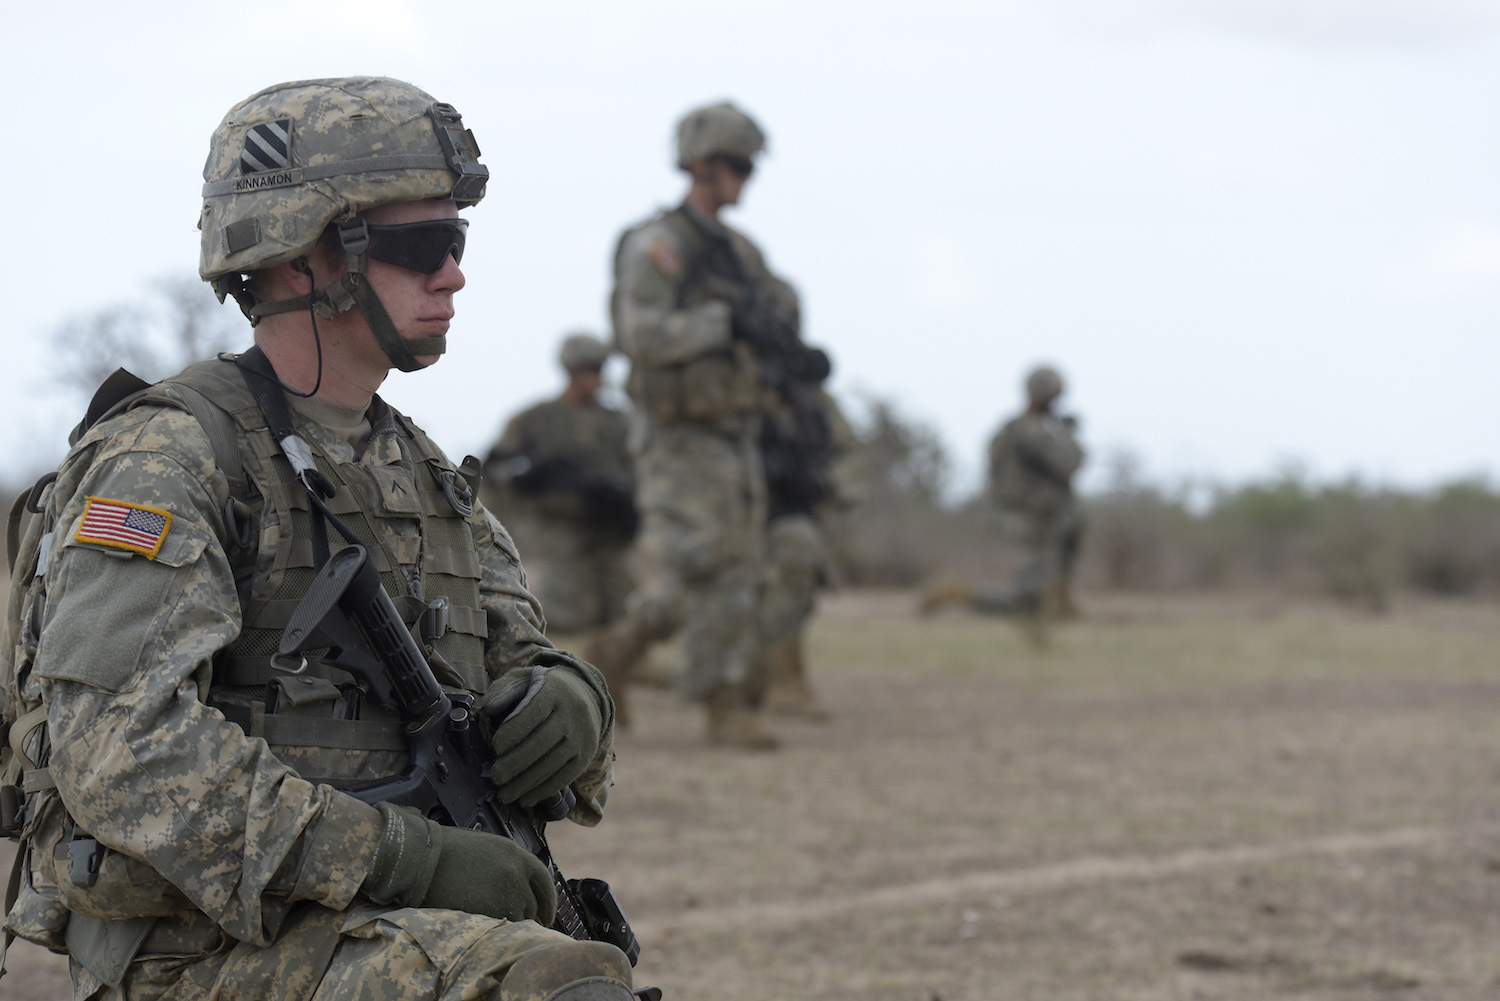 An American soldier of 1st Battalion, 30th Infantry Regiment, 2nd Infantry Brigade Combat Team, 3rd Infantry Division takes position during a combined training exercise with Senegalese 1st Paratrooper Battalion in Thies on July 25, 2016.  The first in a series of planned annual USARAF exercises, ART 2016 brings together U.S. Army Soldiers from U.S. Africa Command's Regionally Aligned Force with African partners to increase U.S. and partner readiness through tough and realistic training, including combined live-fire events, counter-improvised explosive device detection and combat casualty care. / AFP / SEYLLOU